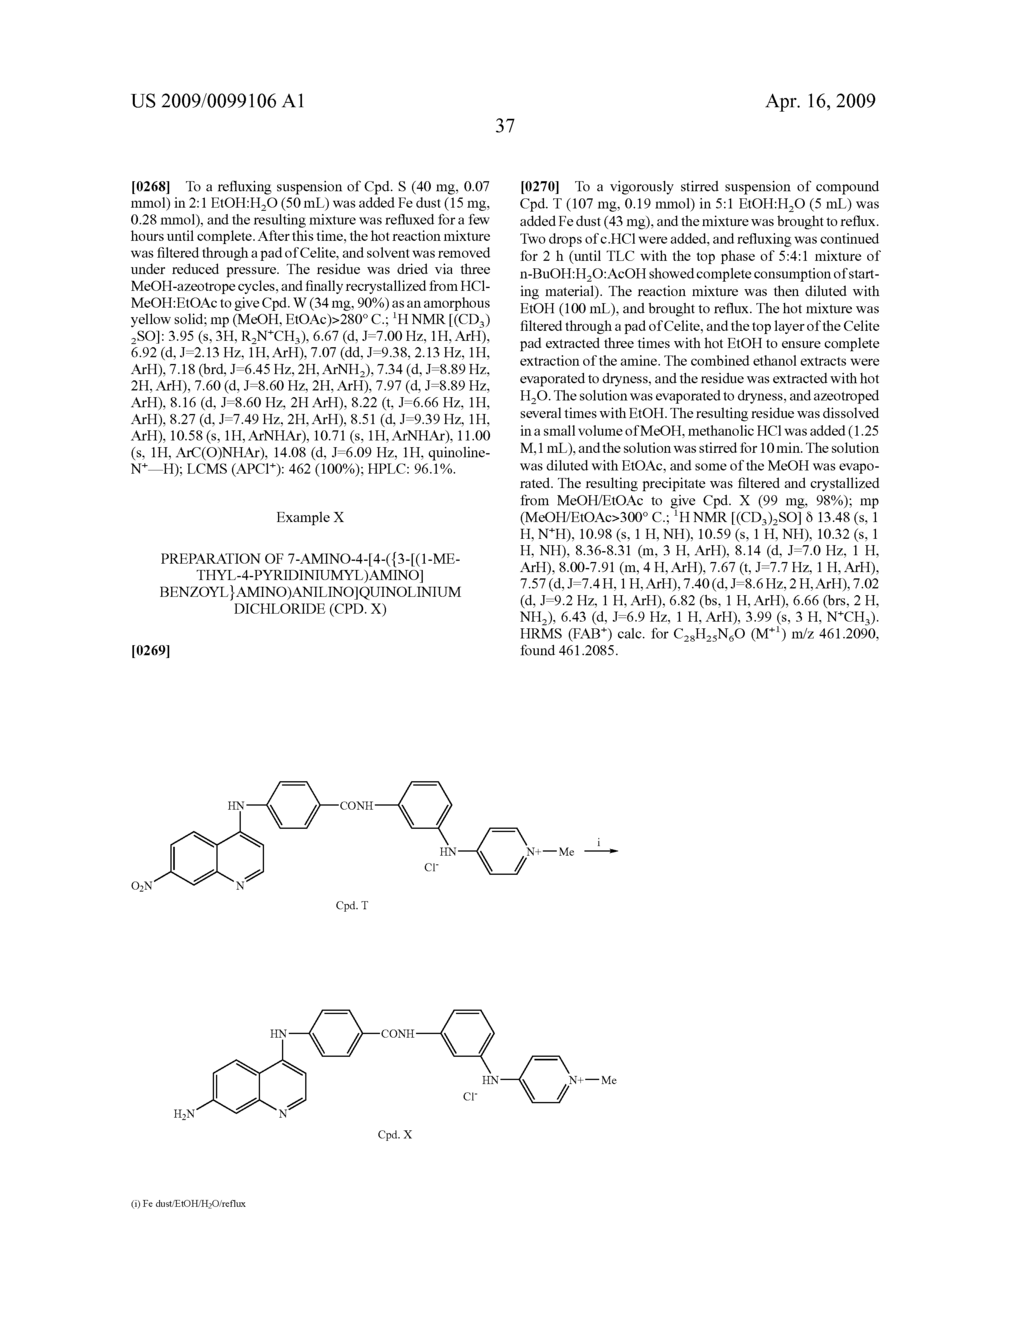 QUINOLINE DERIVATIVES FOR MODULATING DNA METHYLATION - diagram, schematic, and image 39